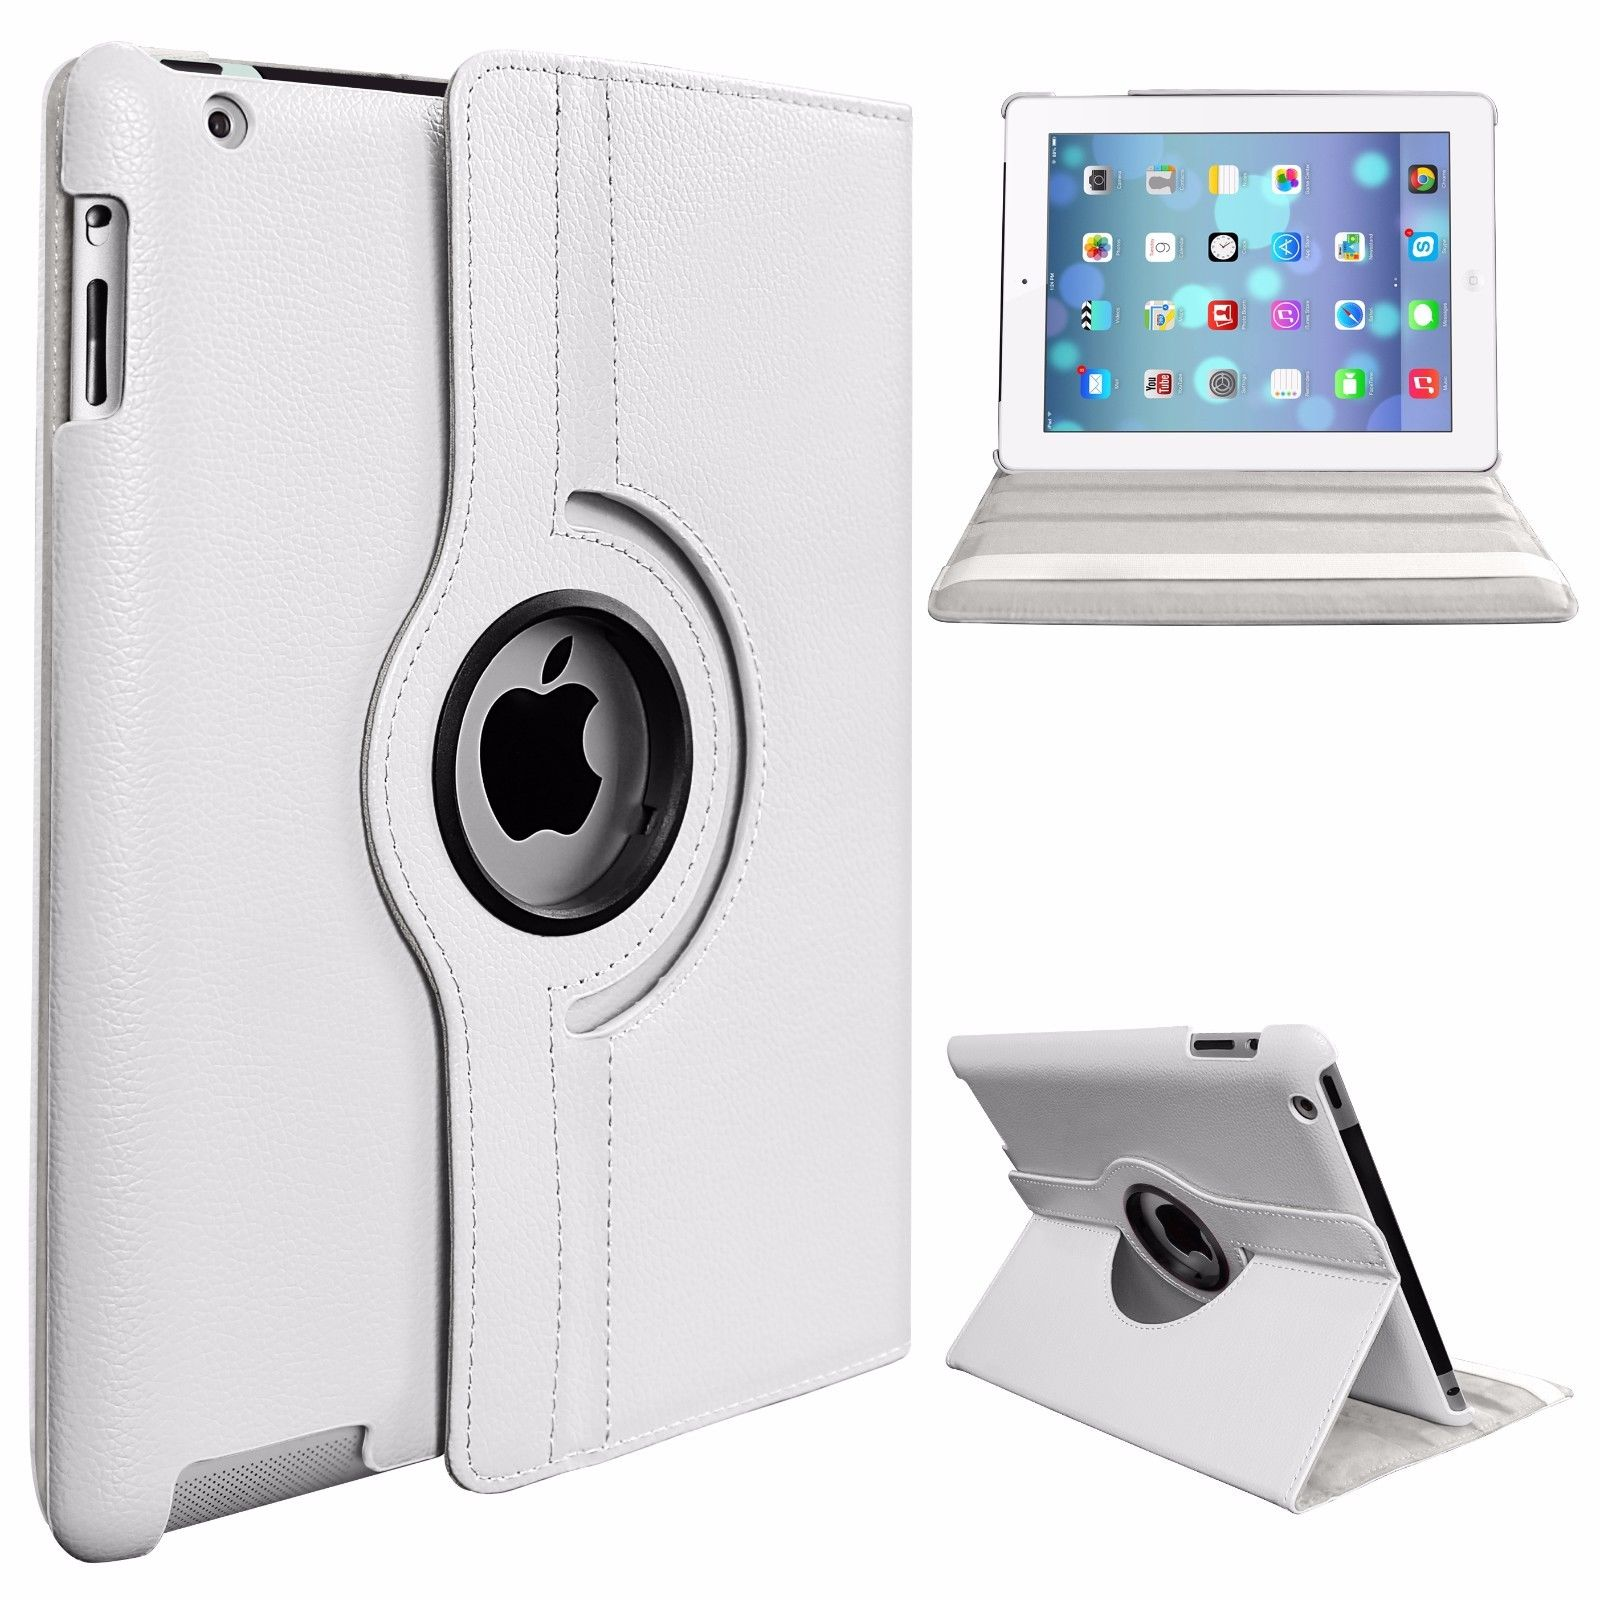 Protective Cover 360-degree Rotating Leather Case for Apple ipad  Air/ipad5 white